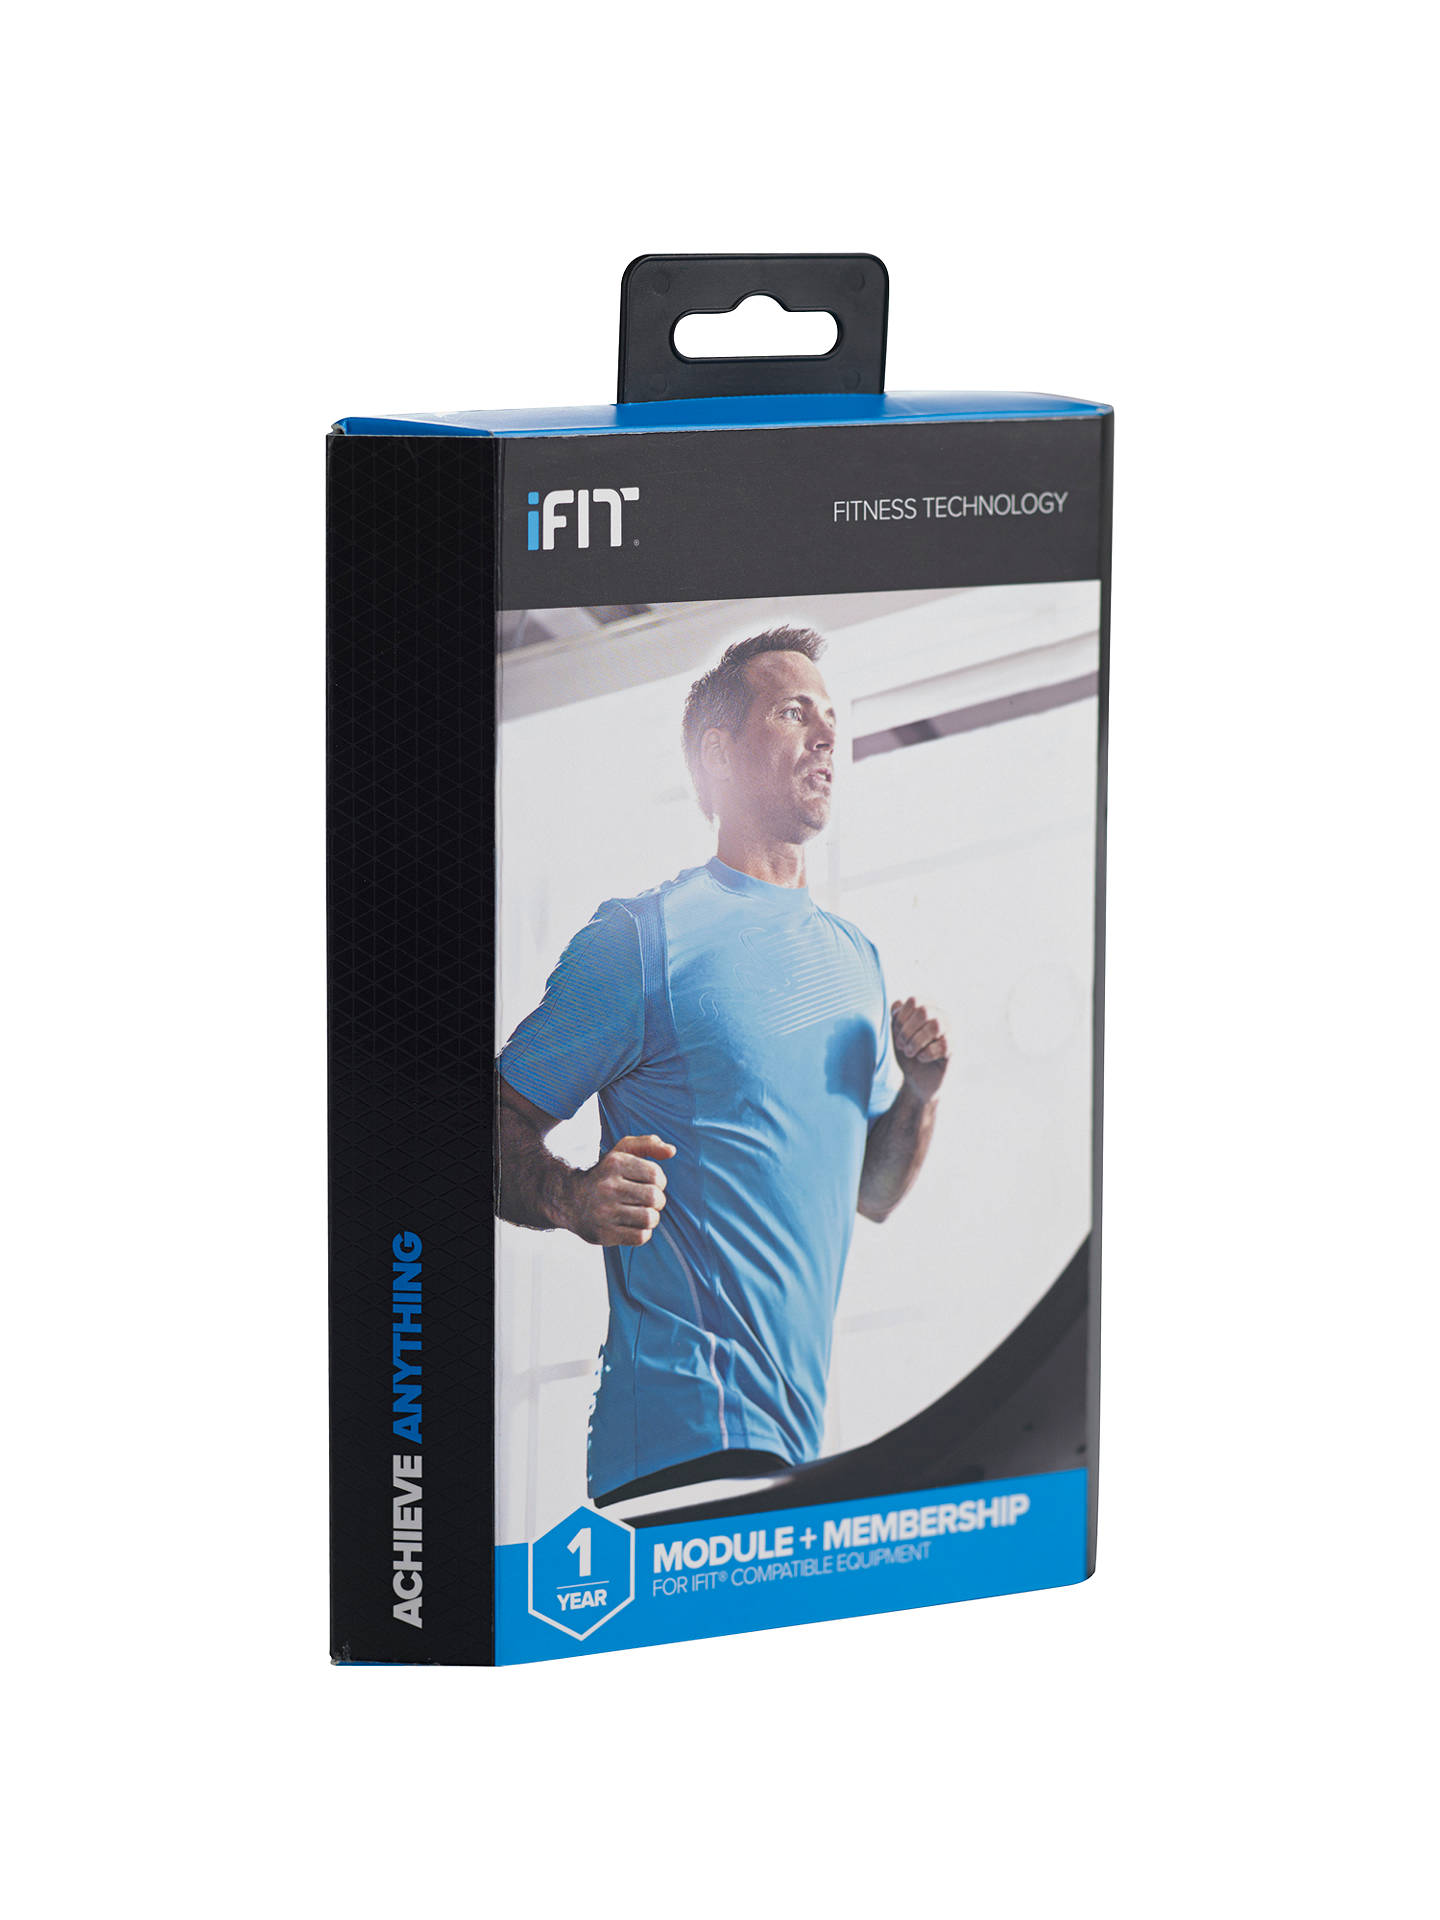 iFit Module 1 Year Subscription Pack at John Lewis & Partners